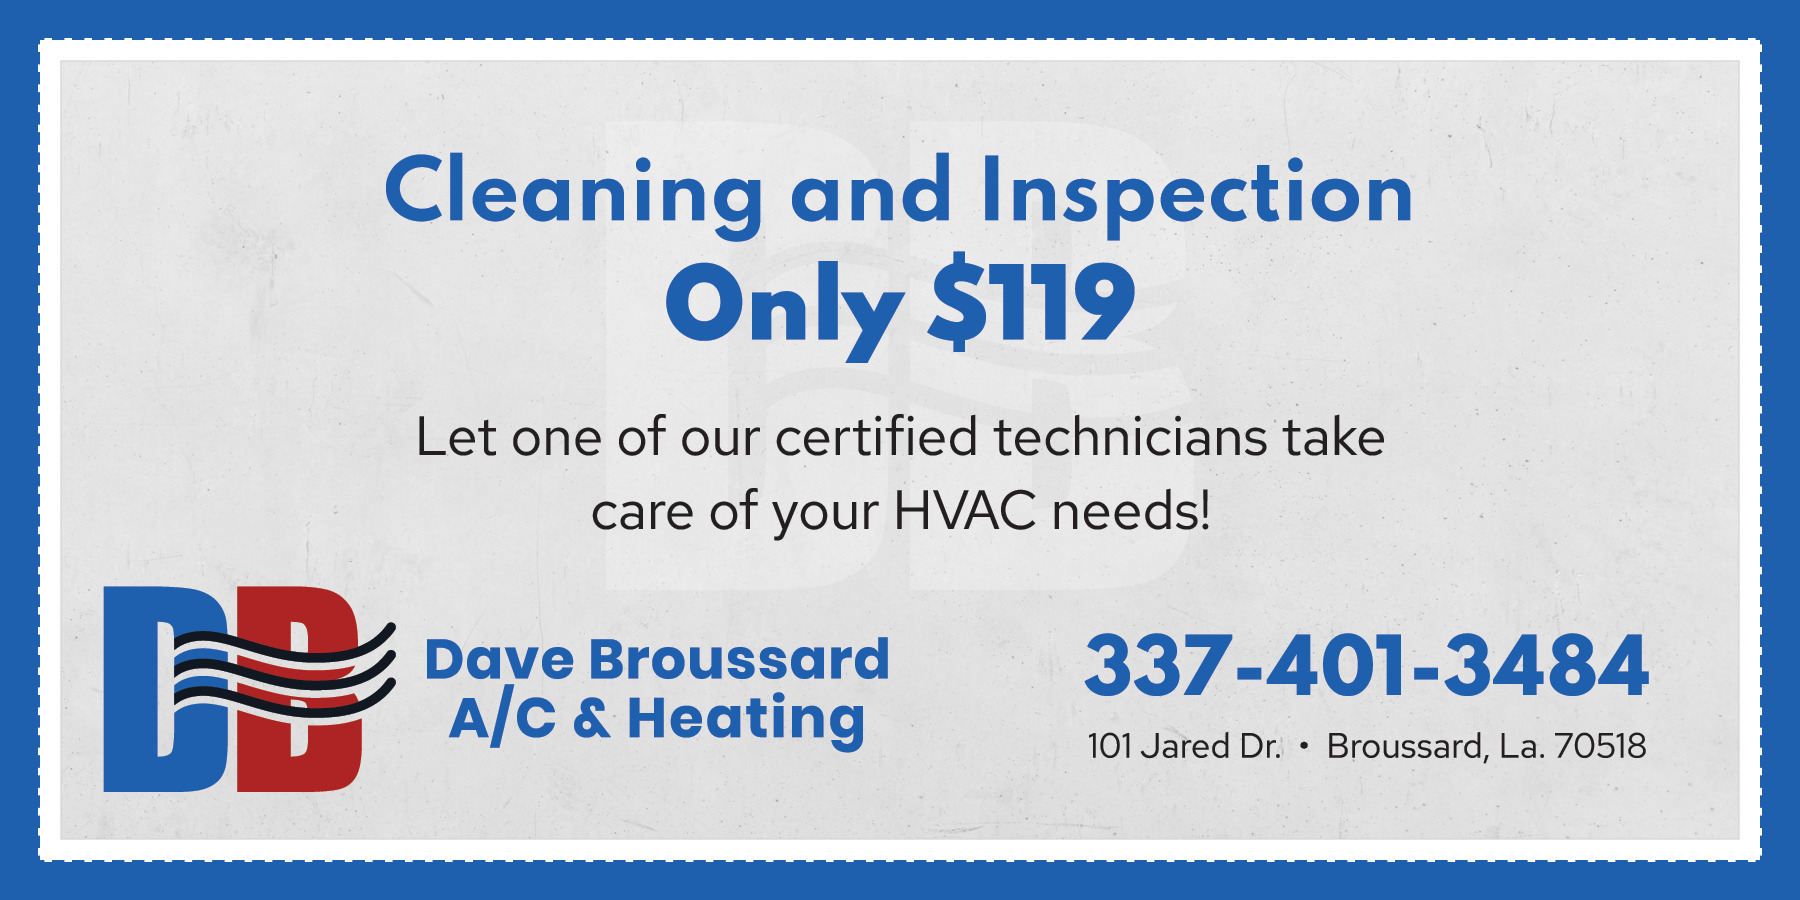 DAV-Coupons-Cleaning-Inspection